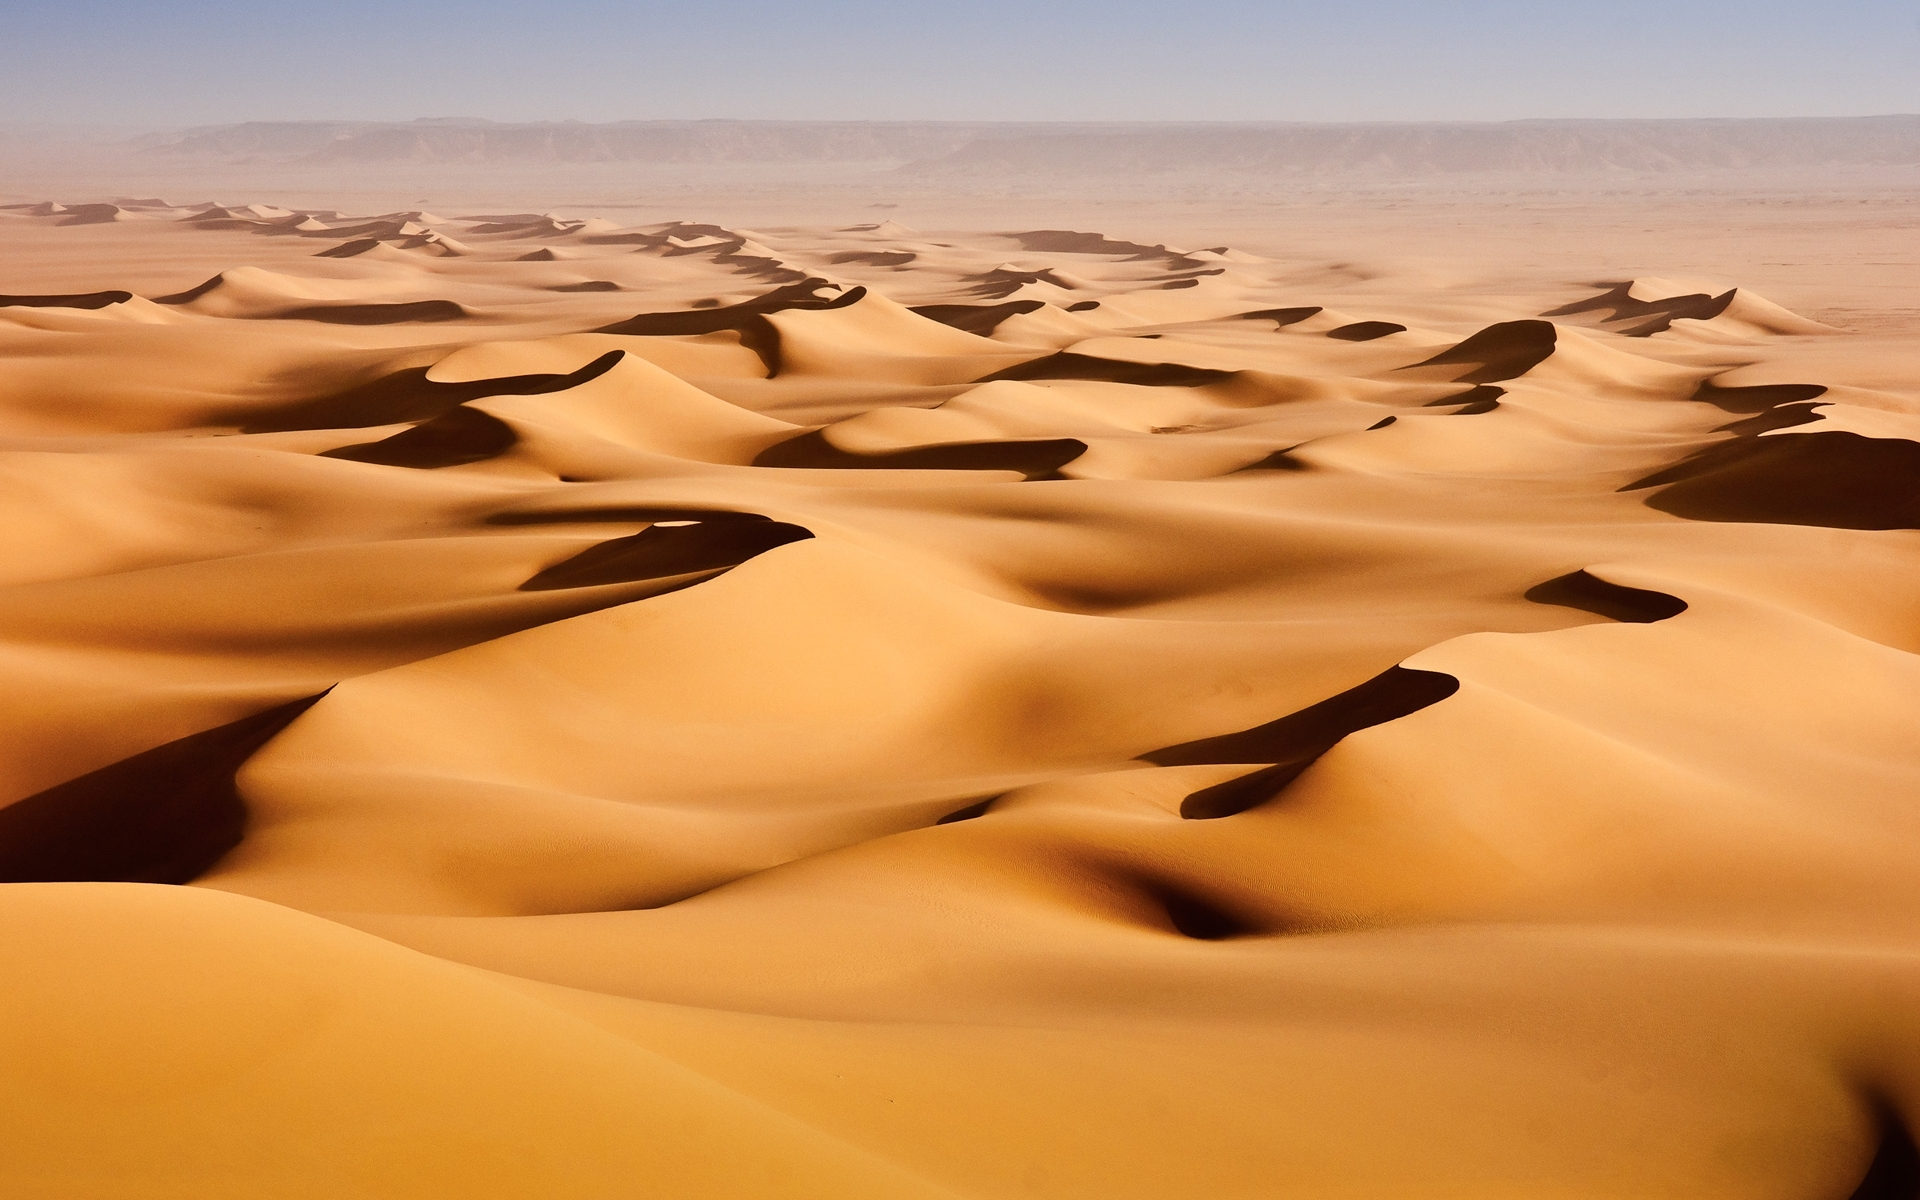 23957 download wallpaper Landscape, Sand, Desert screensavers and pictures for free